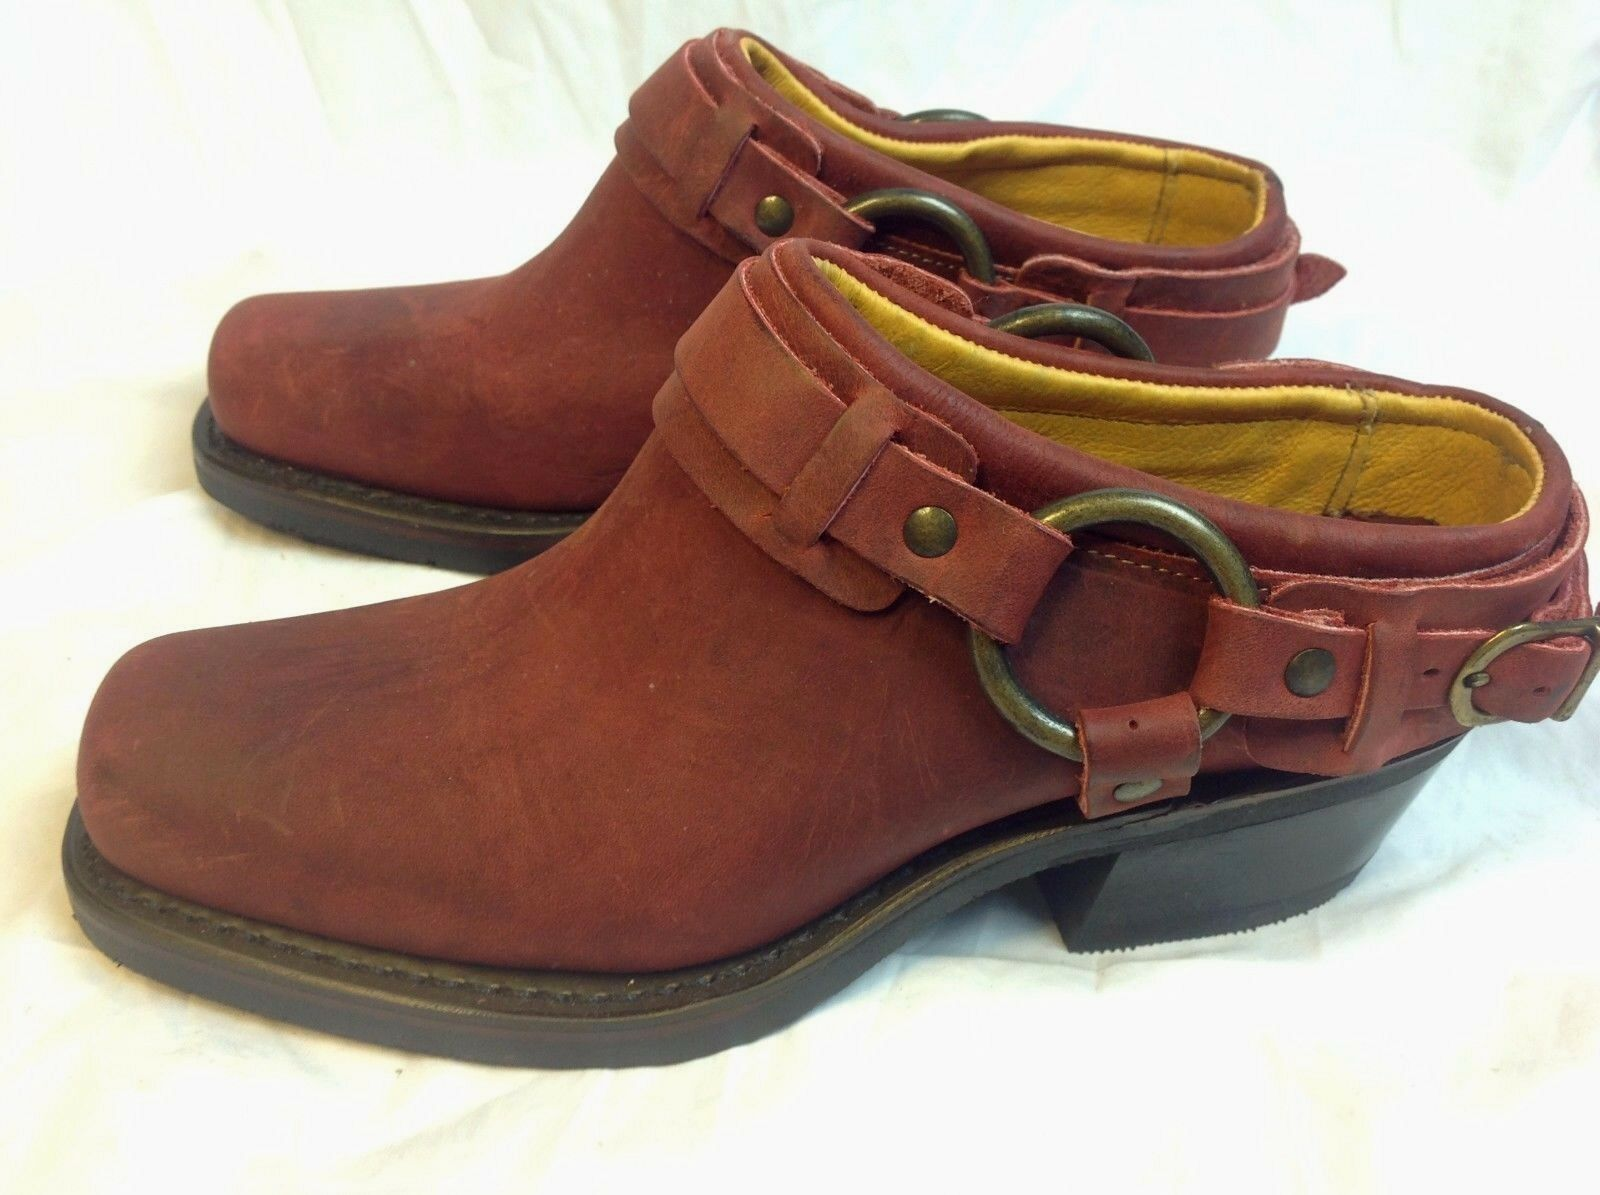 New FRYE Womens 6 - Red Biker Leather Motorcycle Belted Harness Biker Red Mules Clogs 63dfe4